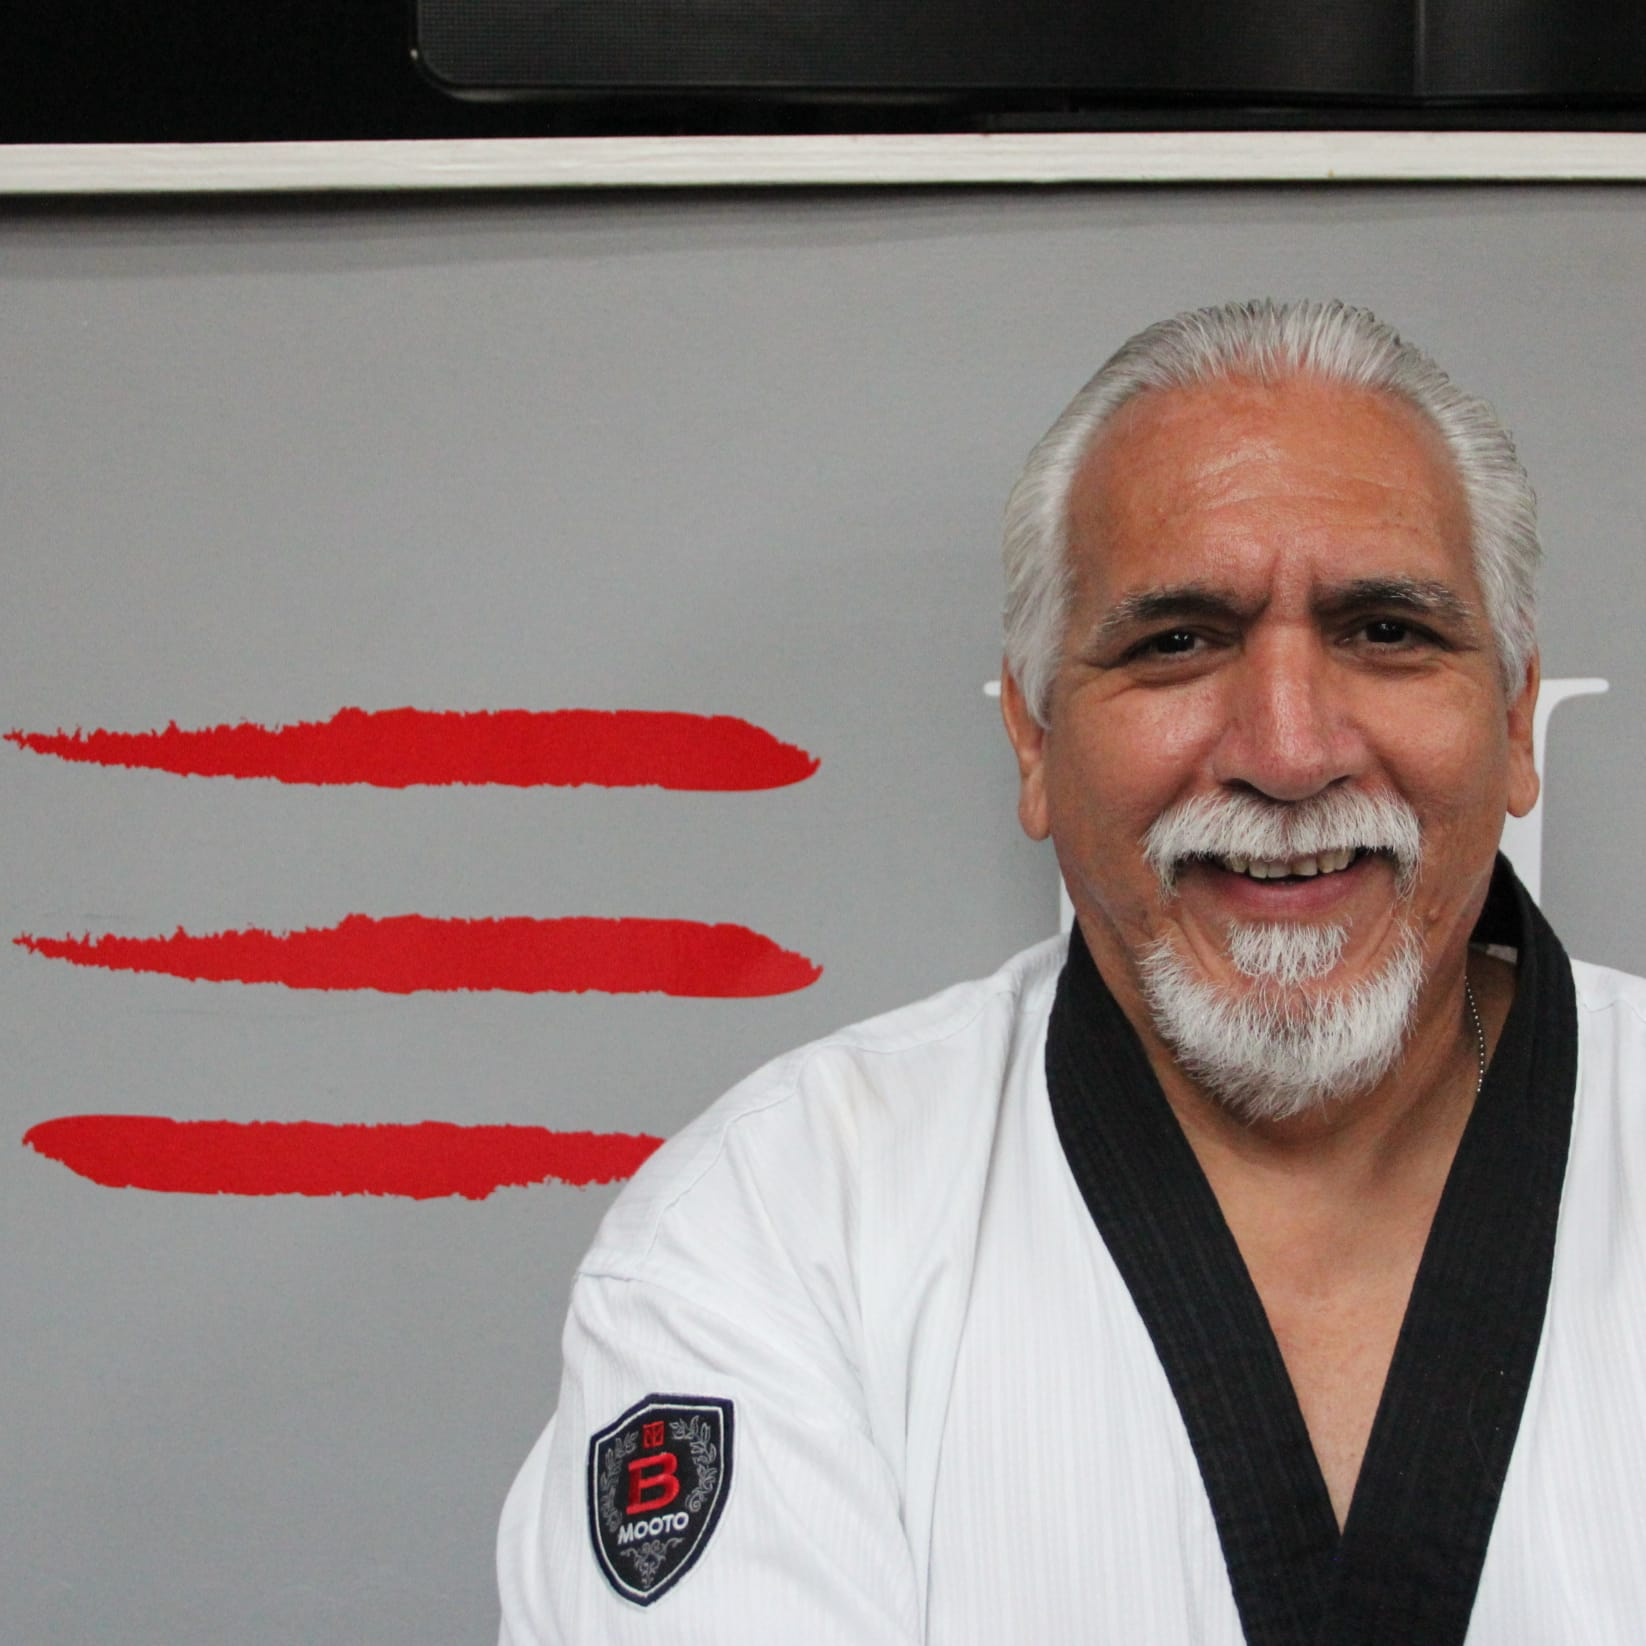 Alex Segura in Spring - HERO Martial Arts Academy